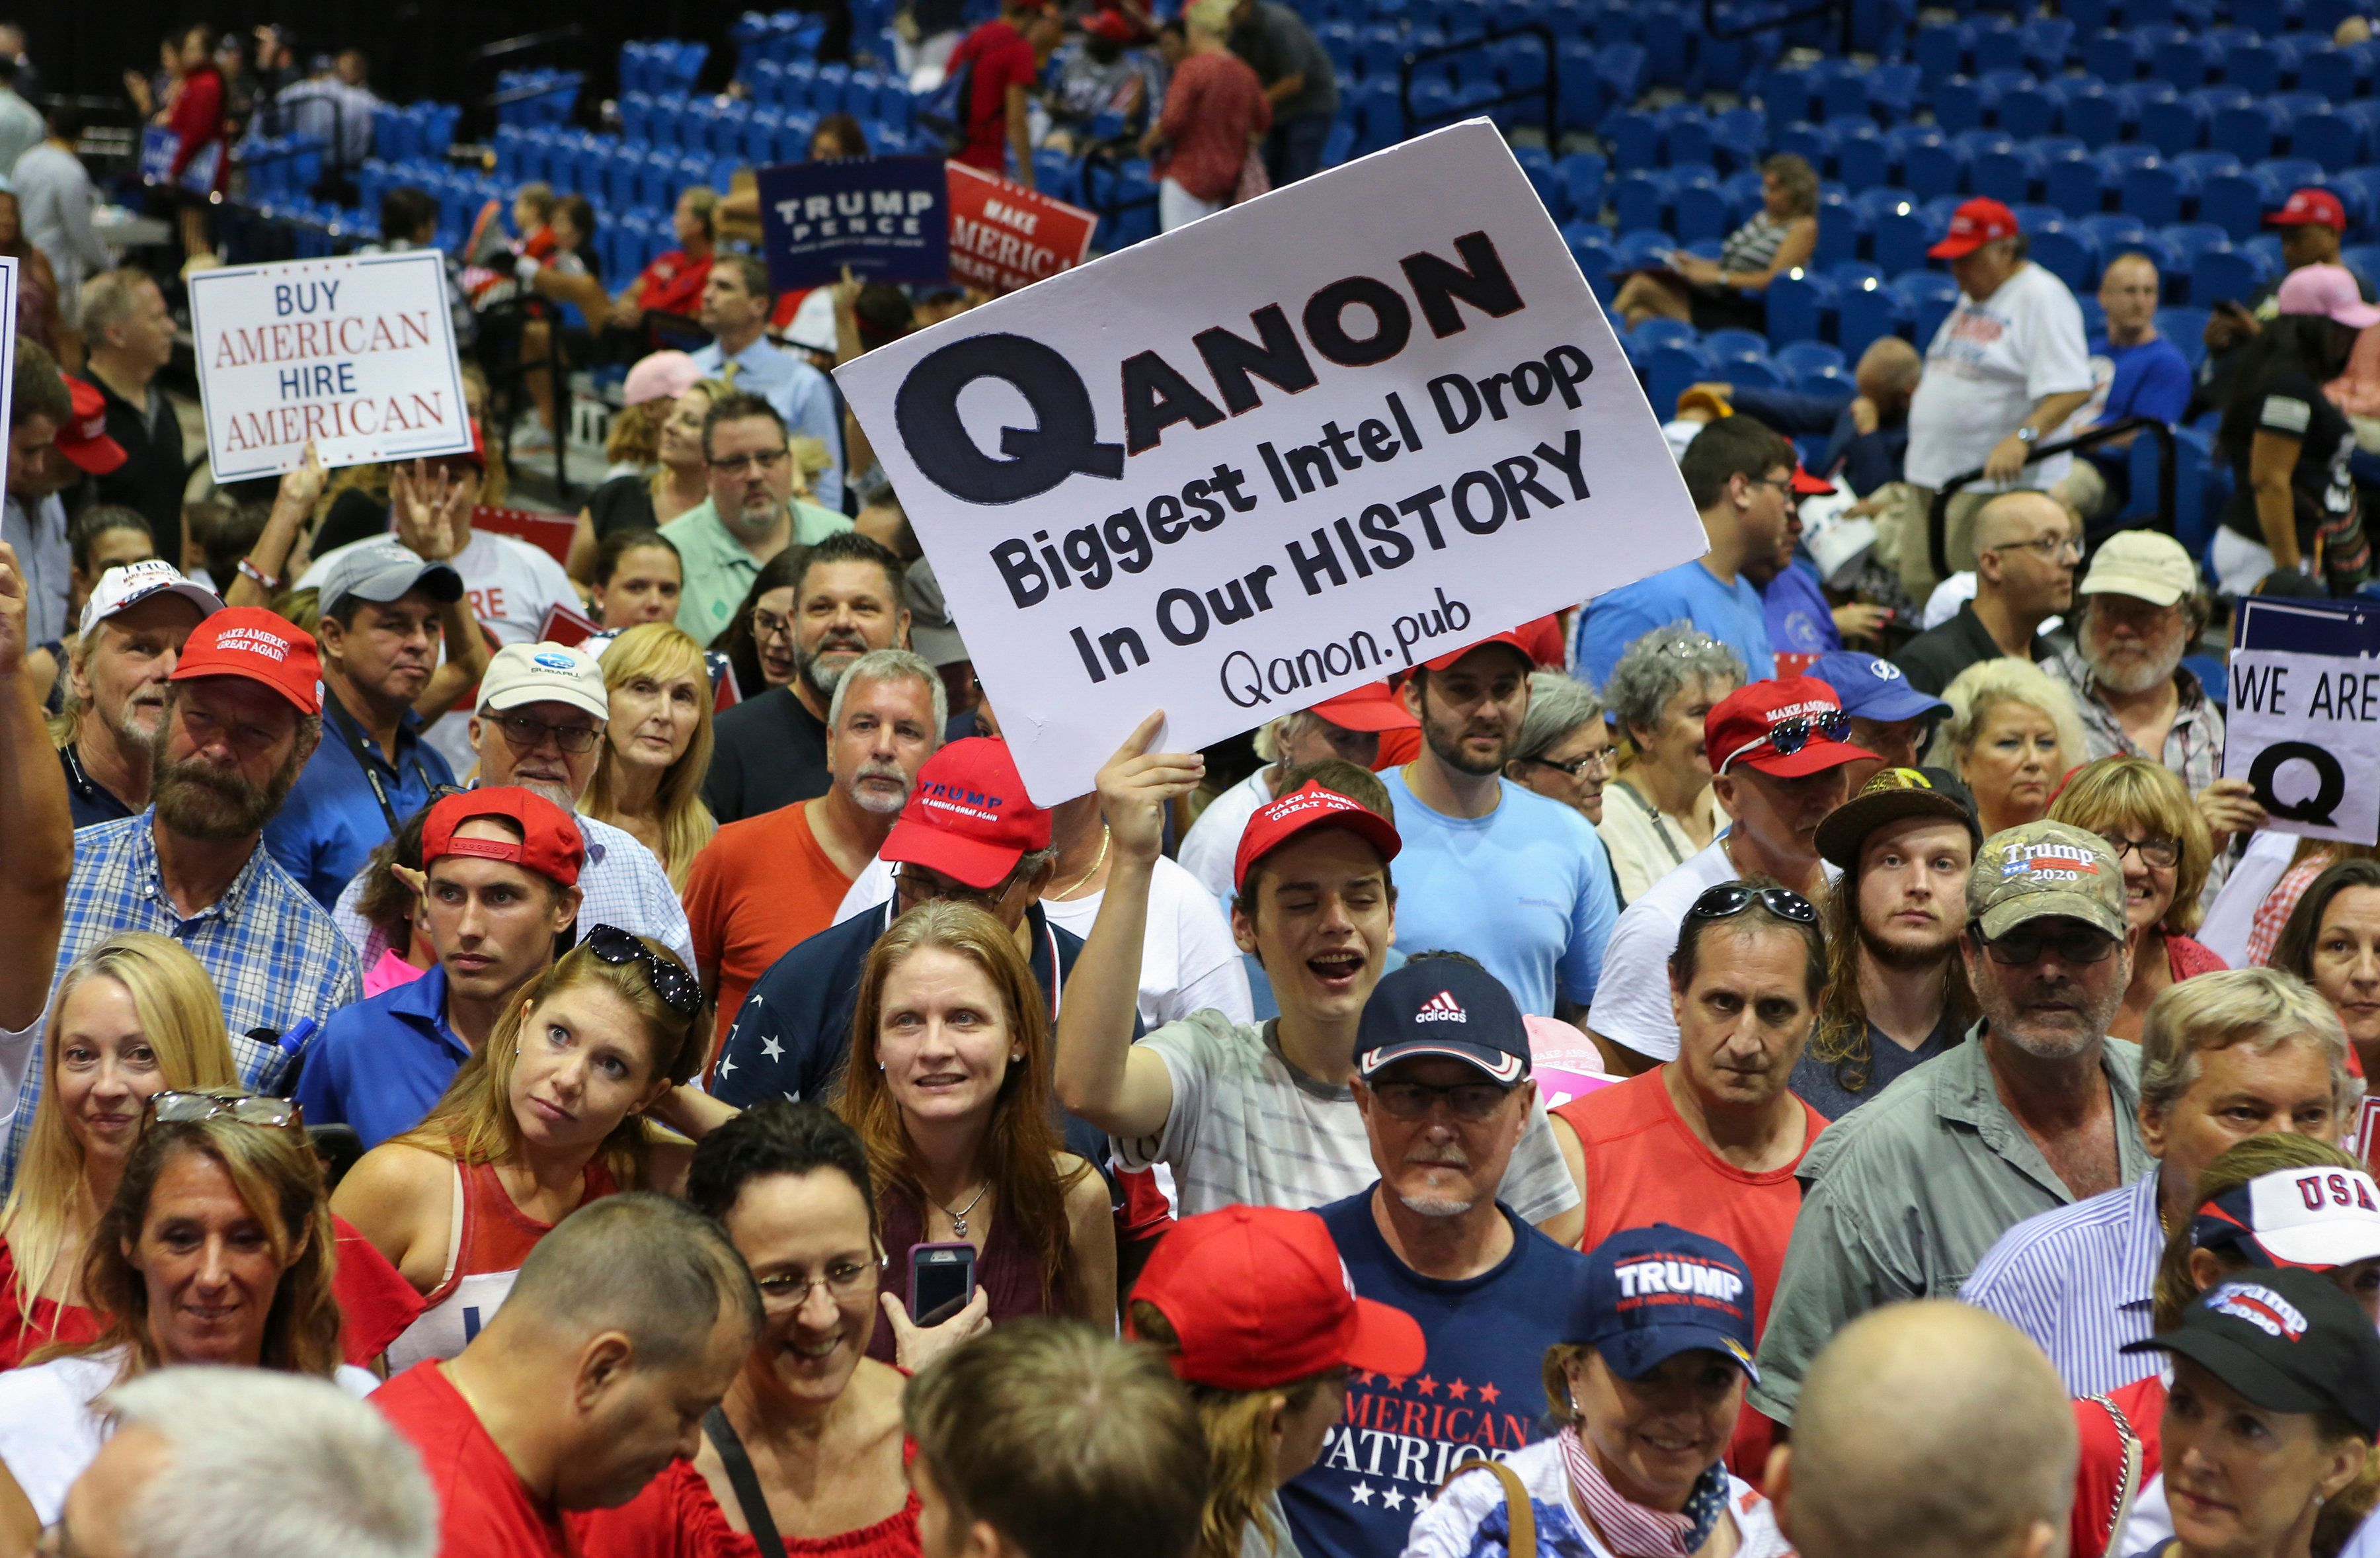 Members of the QAnon community are anxiously awaiting the official launch of 8kun, as they believe it will reenable them to c